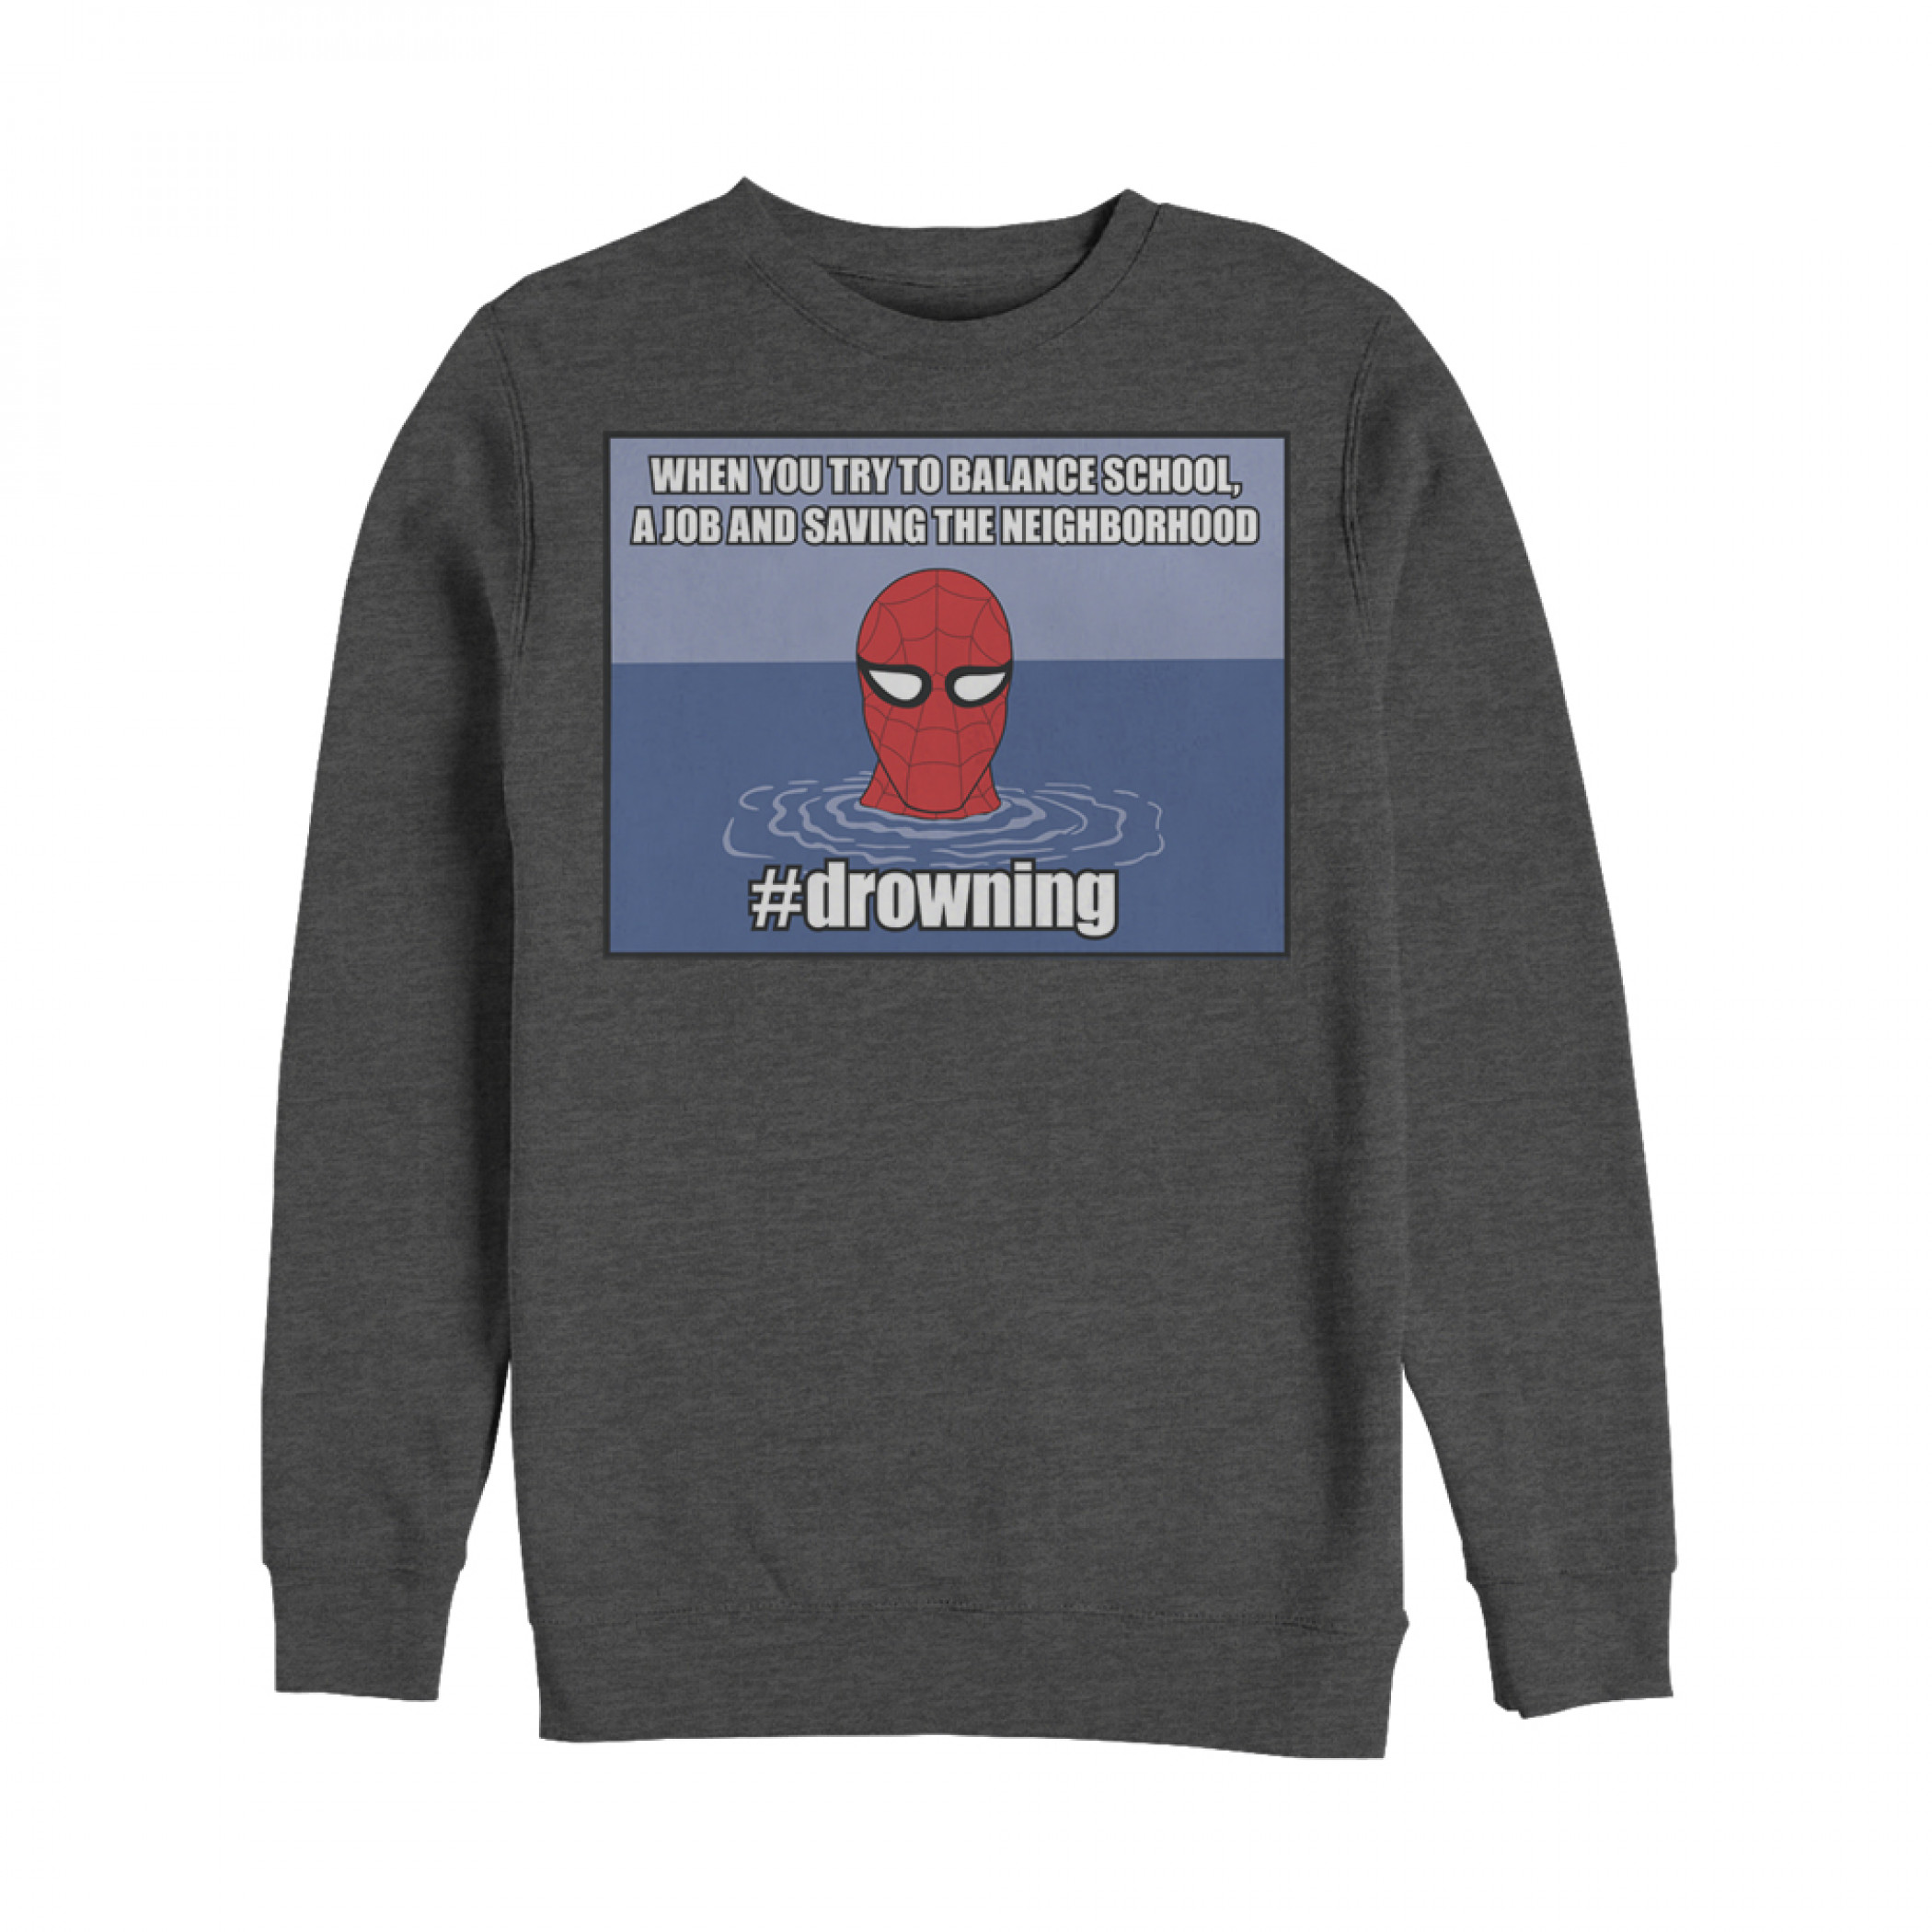 Marvel Spider-Man #drowning Sweatshirt